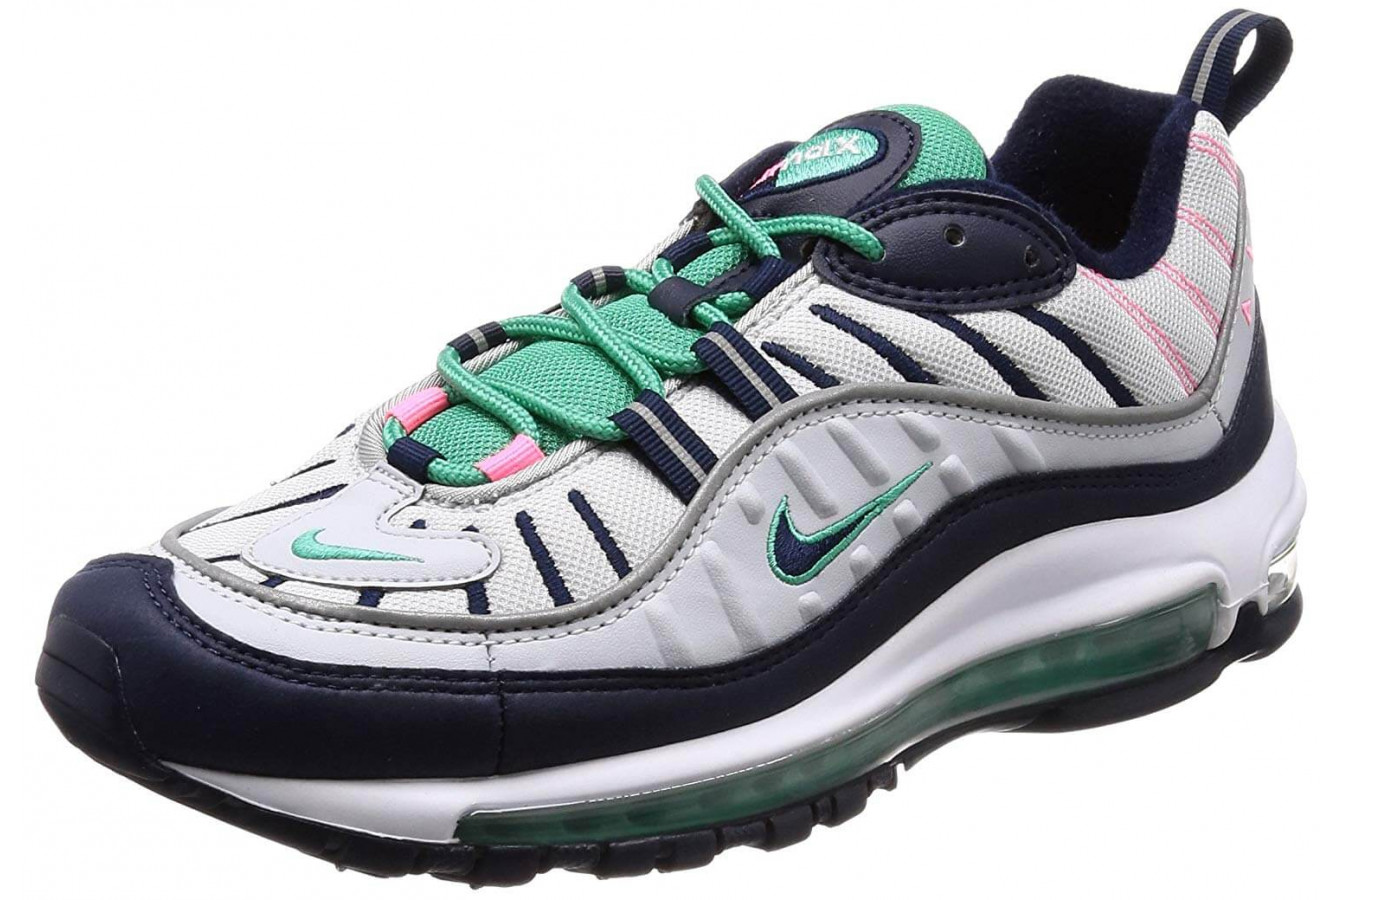 825d9abc1c Nike Air Max 98 Reviewed - To Buy or Not in June 2019?